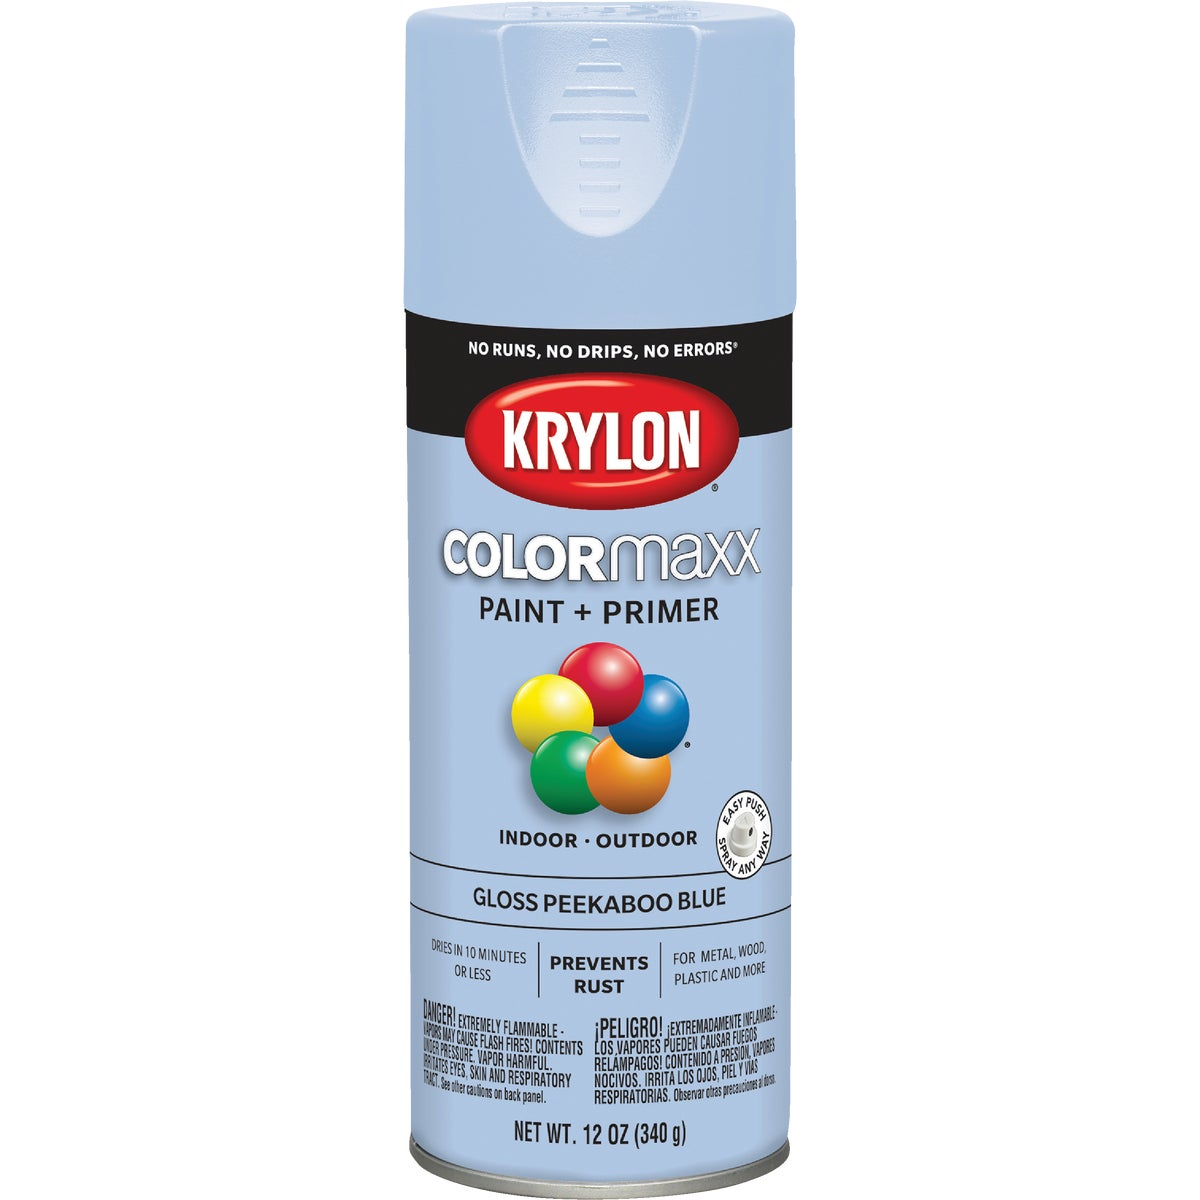 GLS PEEKABOO SPRAY PAINT - 51517 by Krylon/consumer Div